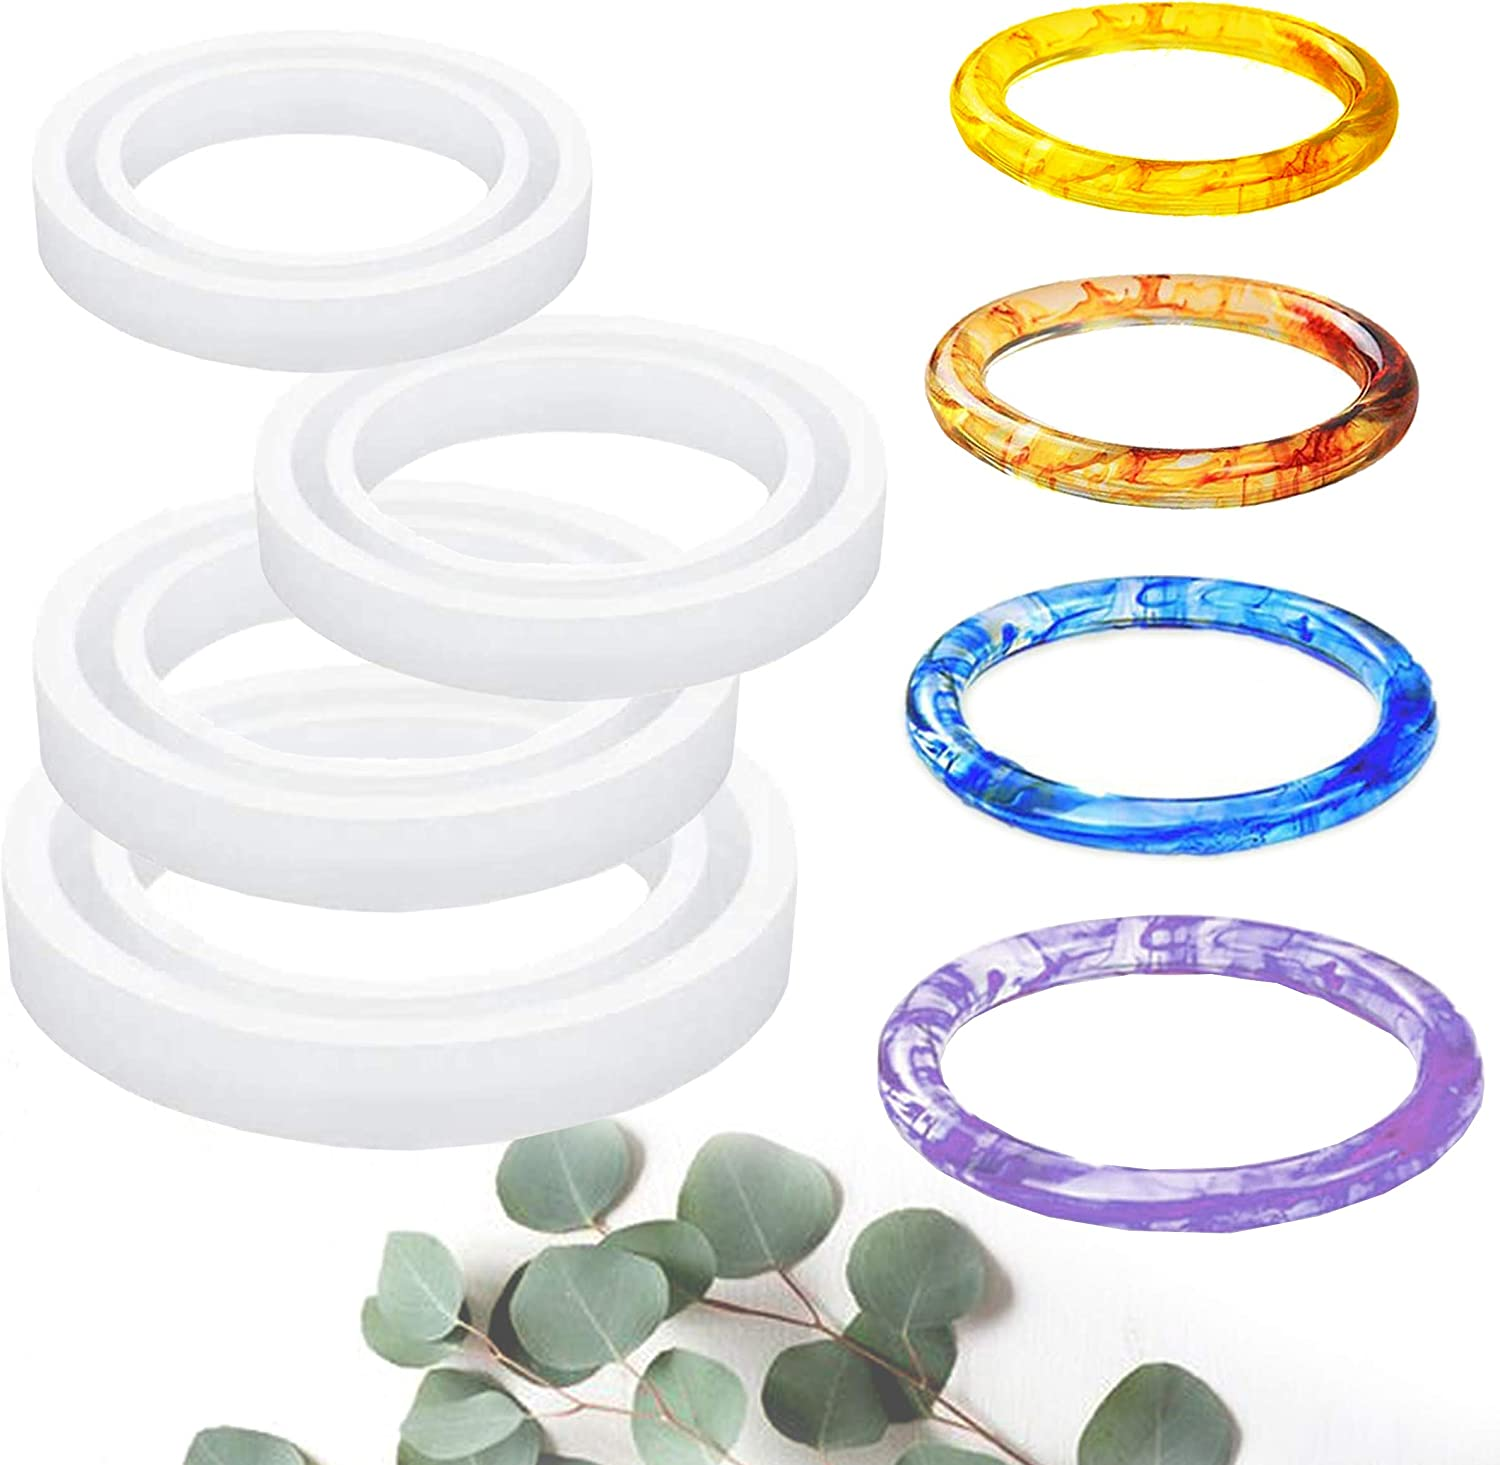 Bracelet Mold Special Campaign Round Silicone Mould Brand new Re Crystal DIY Epoxy for